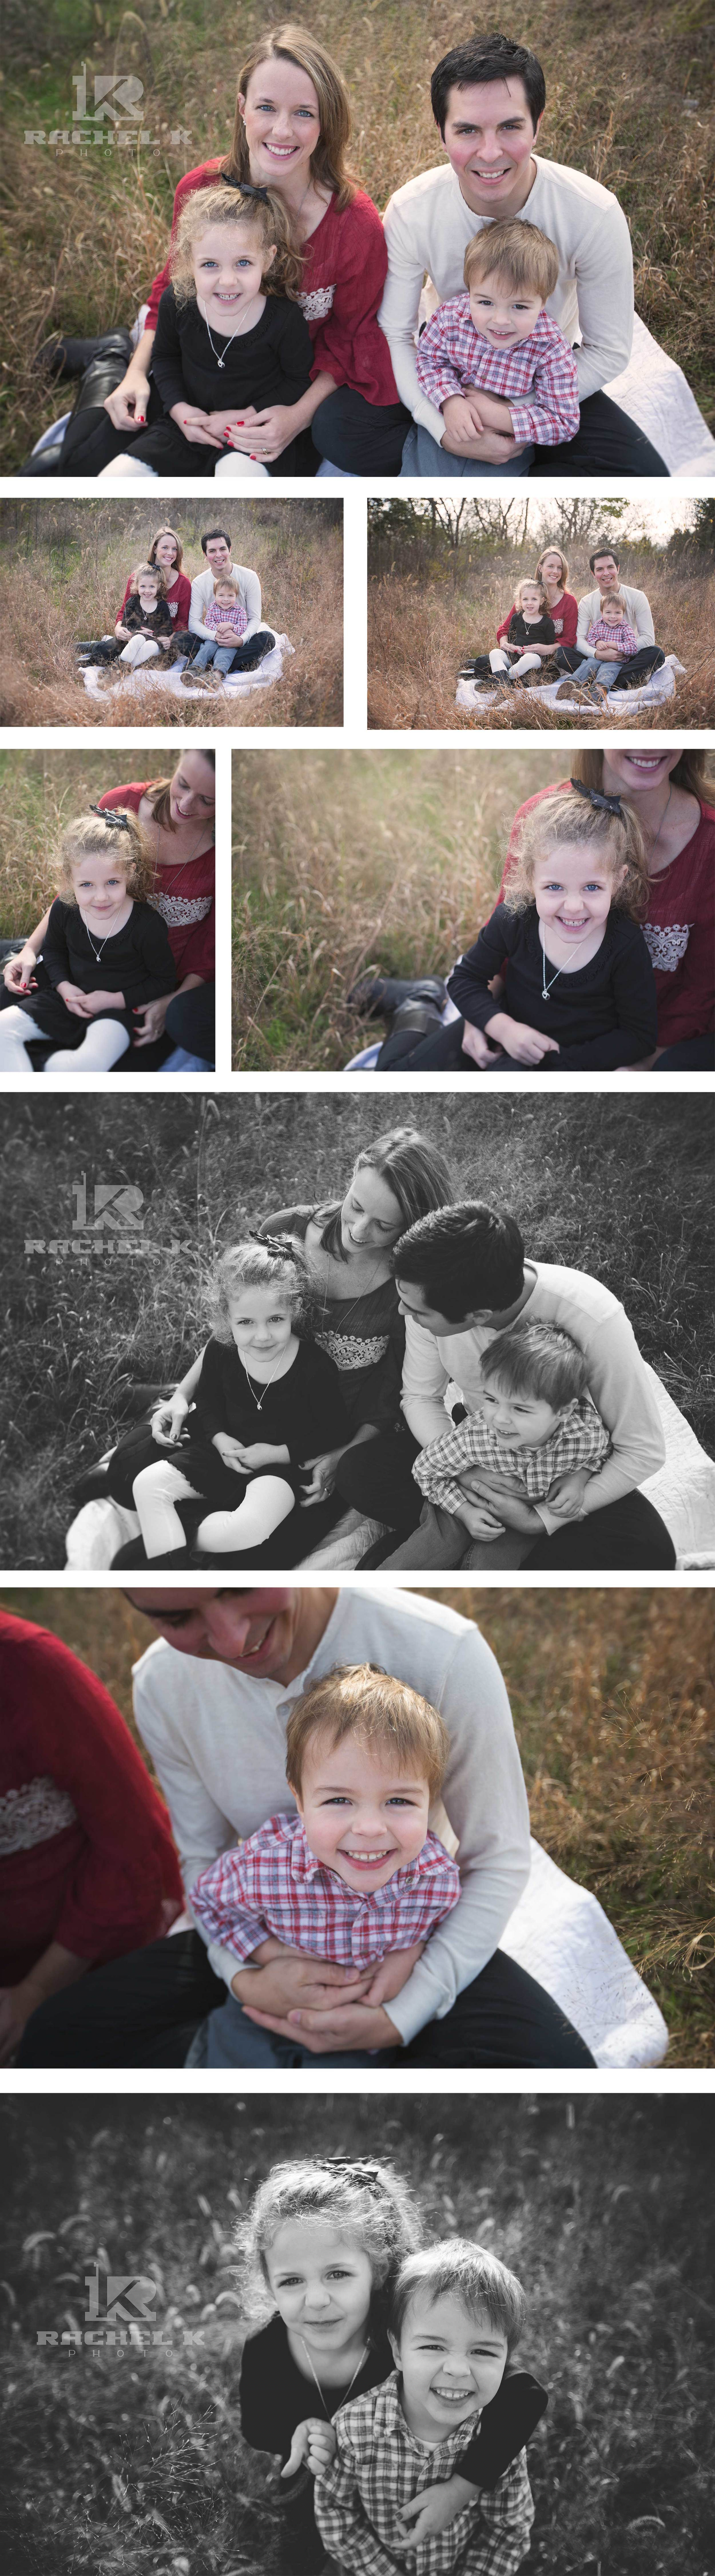 Family photos in field